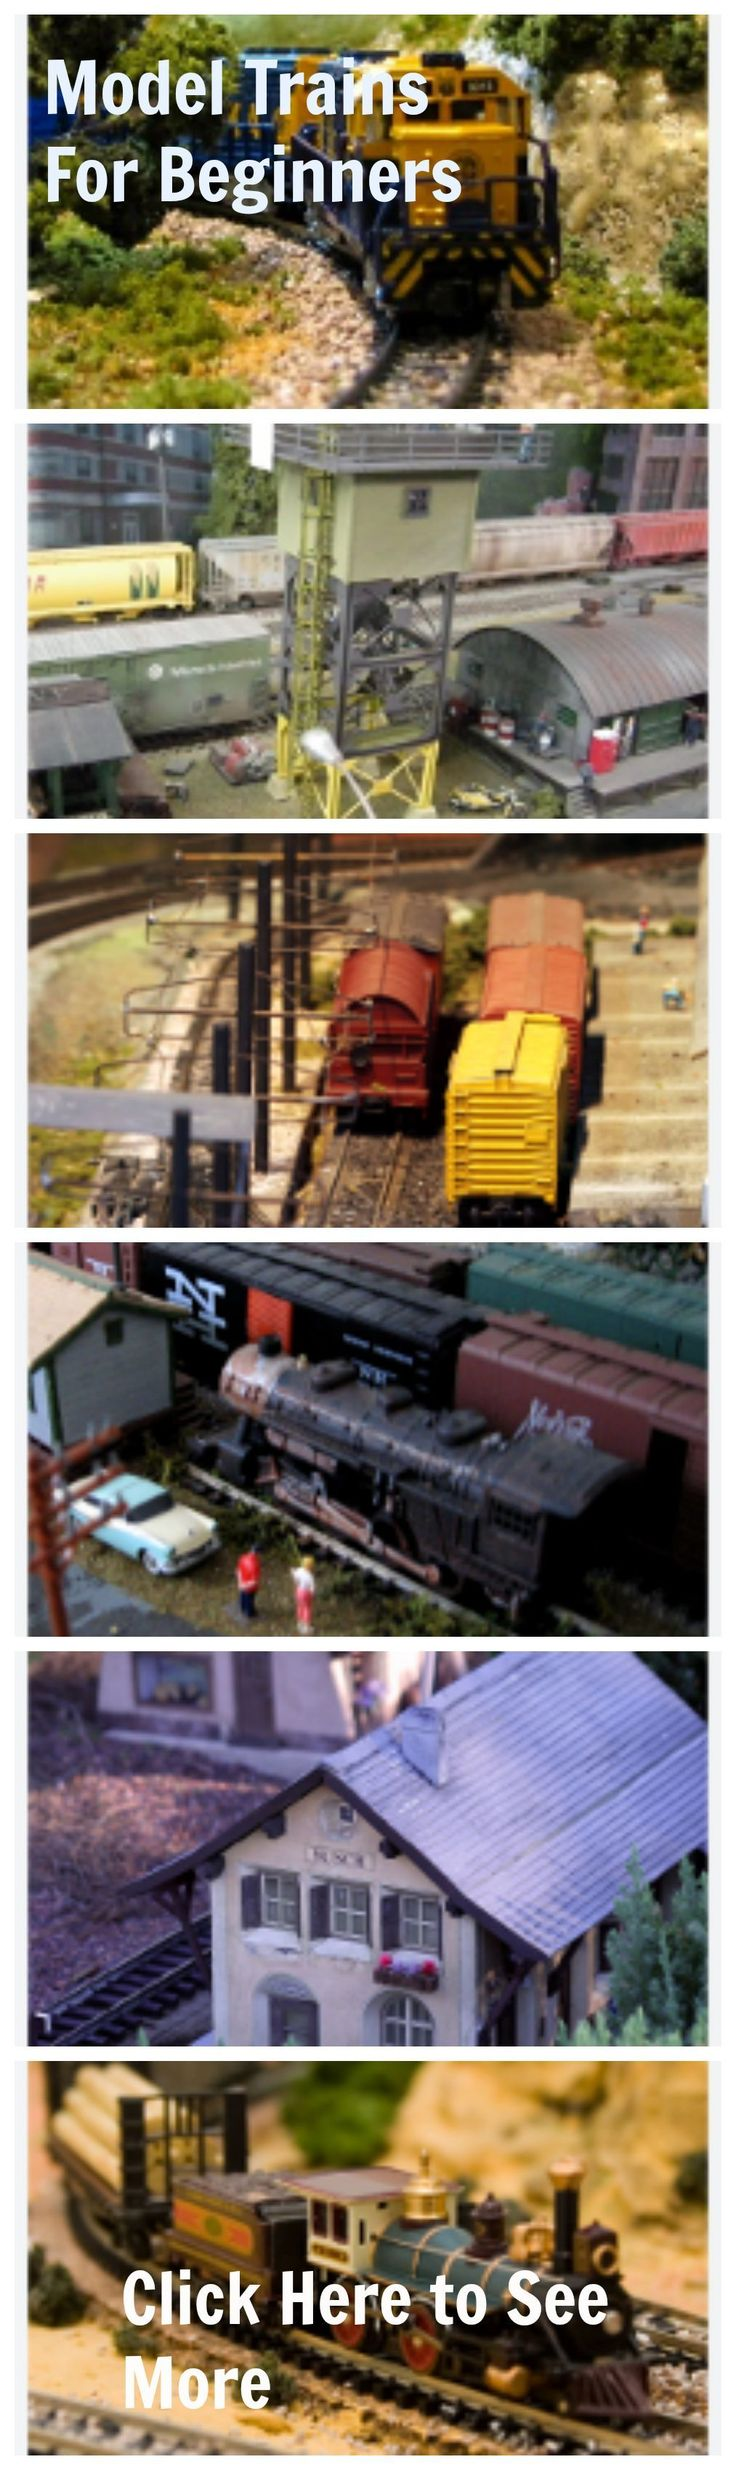 """""""Model Trains for Beginners"""" Contains The Vital Secrets You Must Have To Create The Model Train layout of Your Dreams! http://fbshare.info/model-trains-for-beginners #electrictrainsets"""